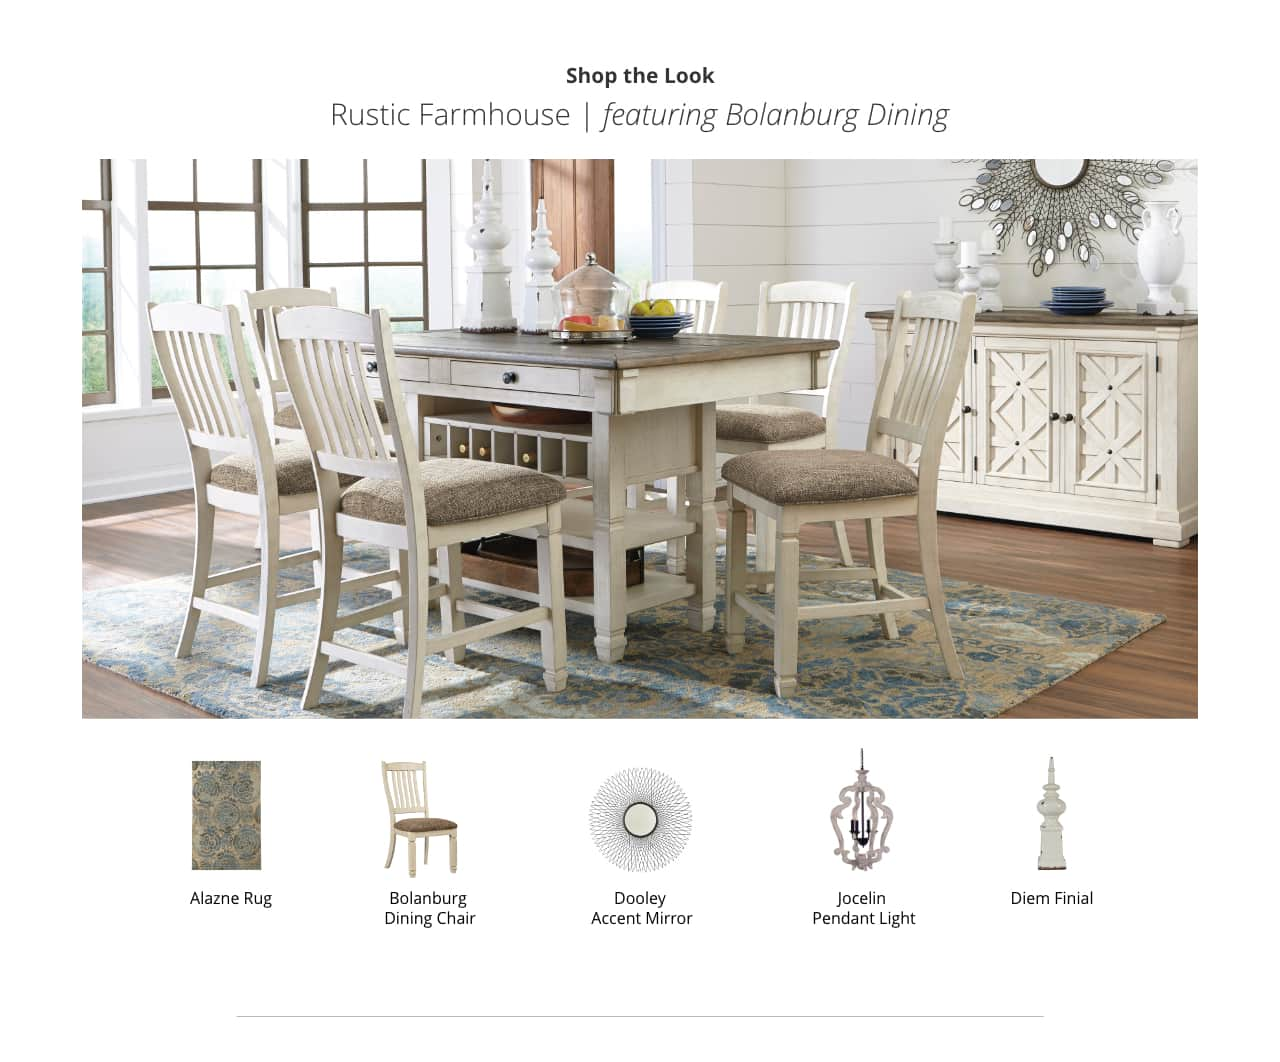 kitchen dining room furniture ashley home table accent pieces rustic farmhouse bolanburg gold tablecloth cool lamps reclaimed inch wide sofa patio sectional clearance entry